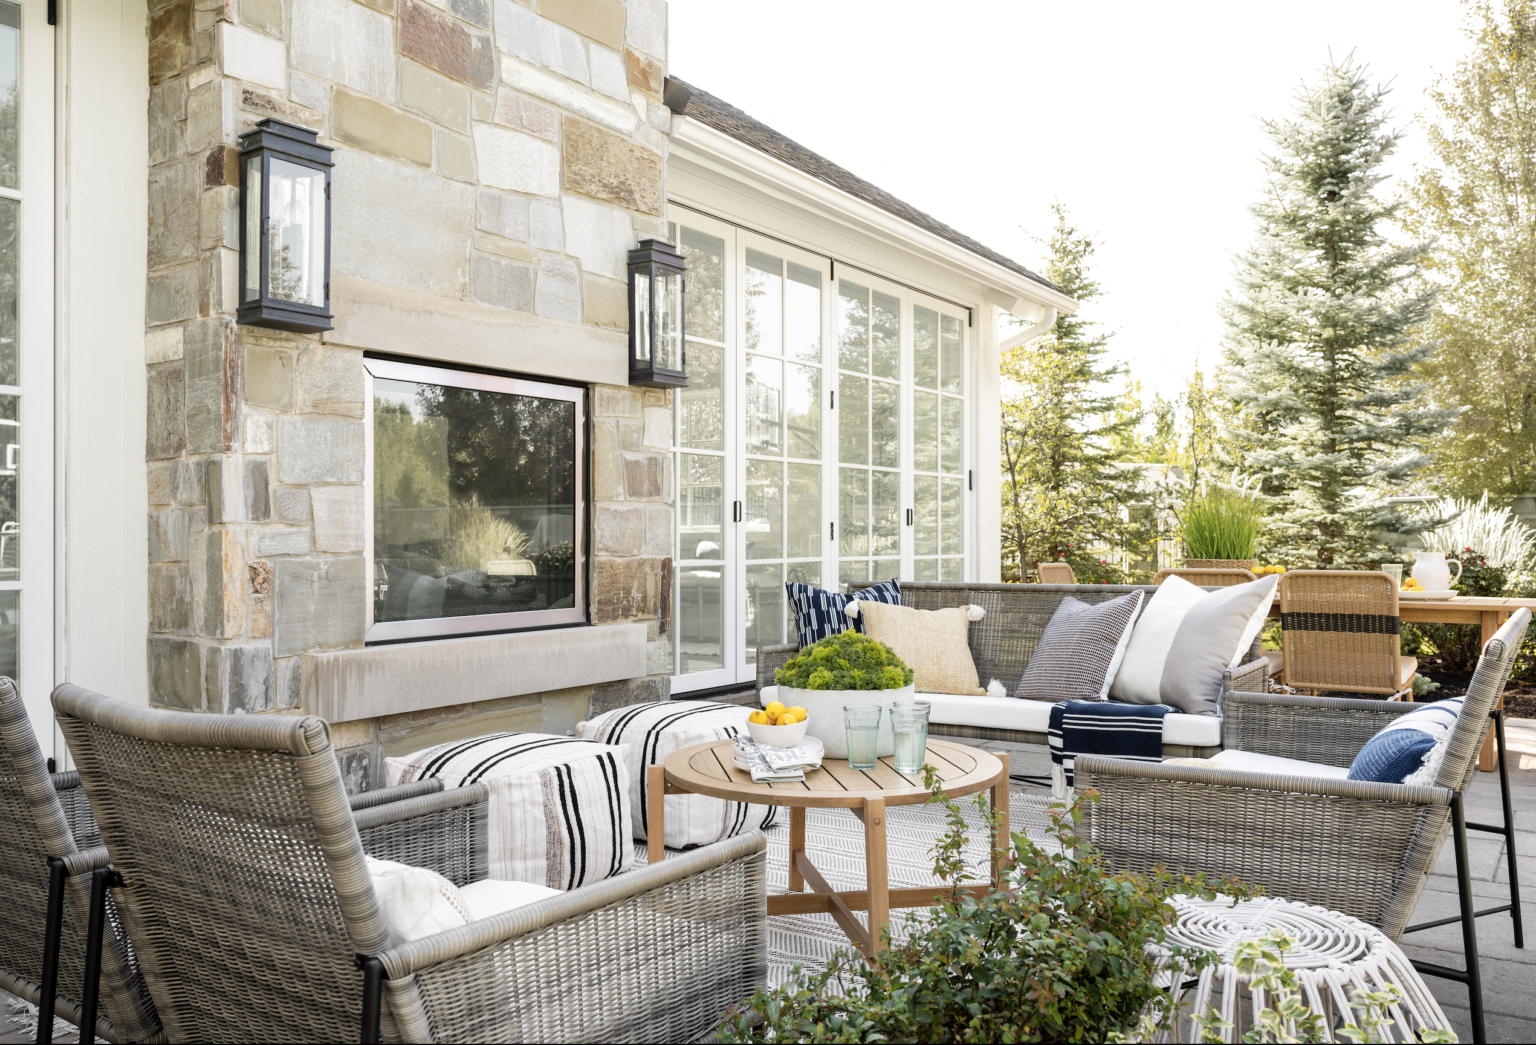 Give Your Patio a Warm Weather Makeover